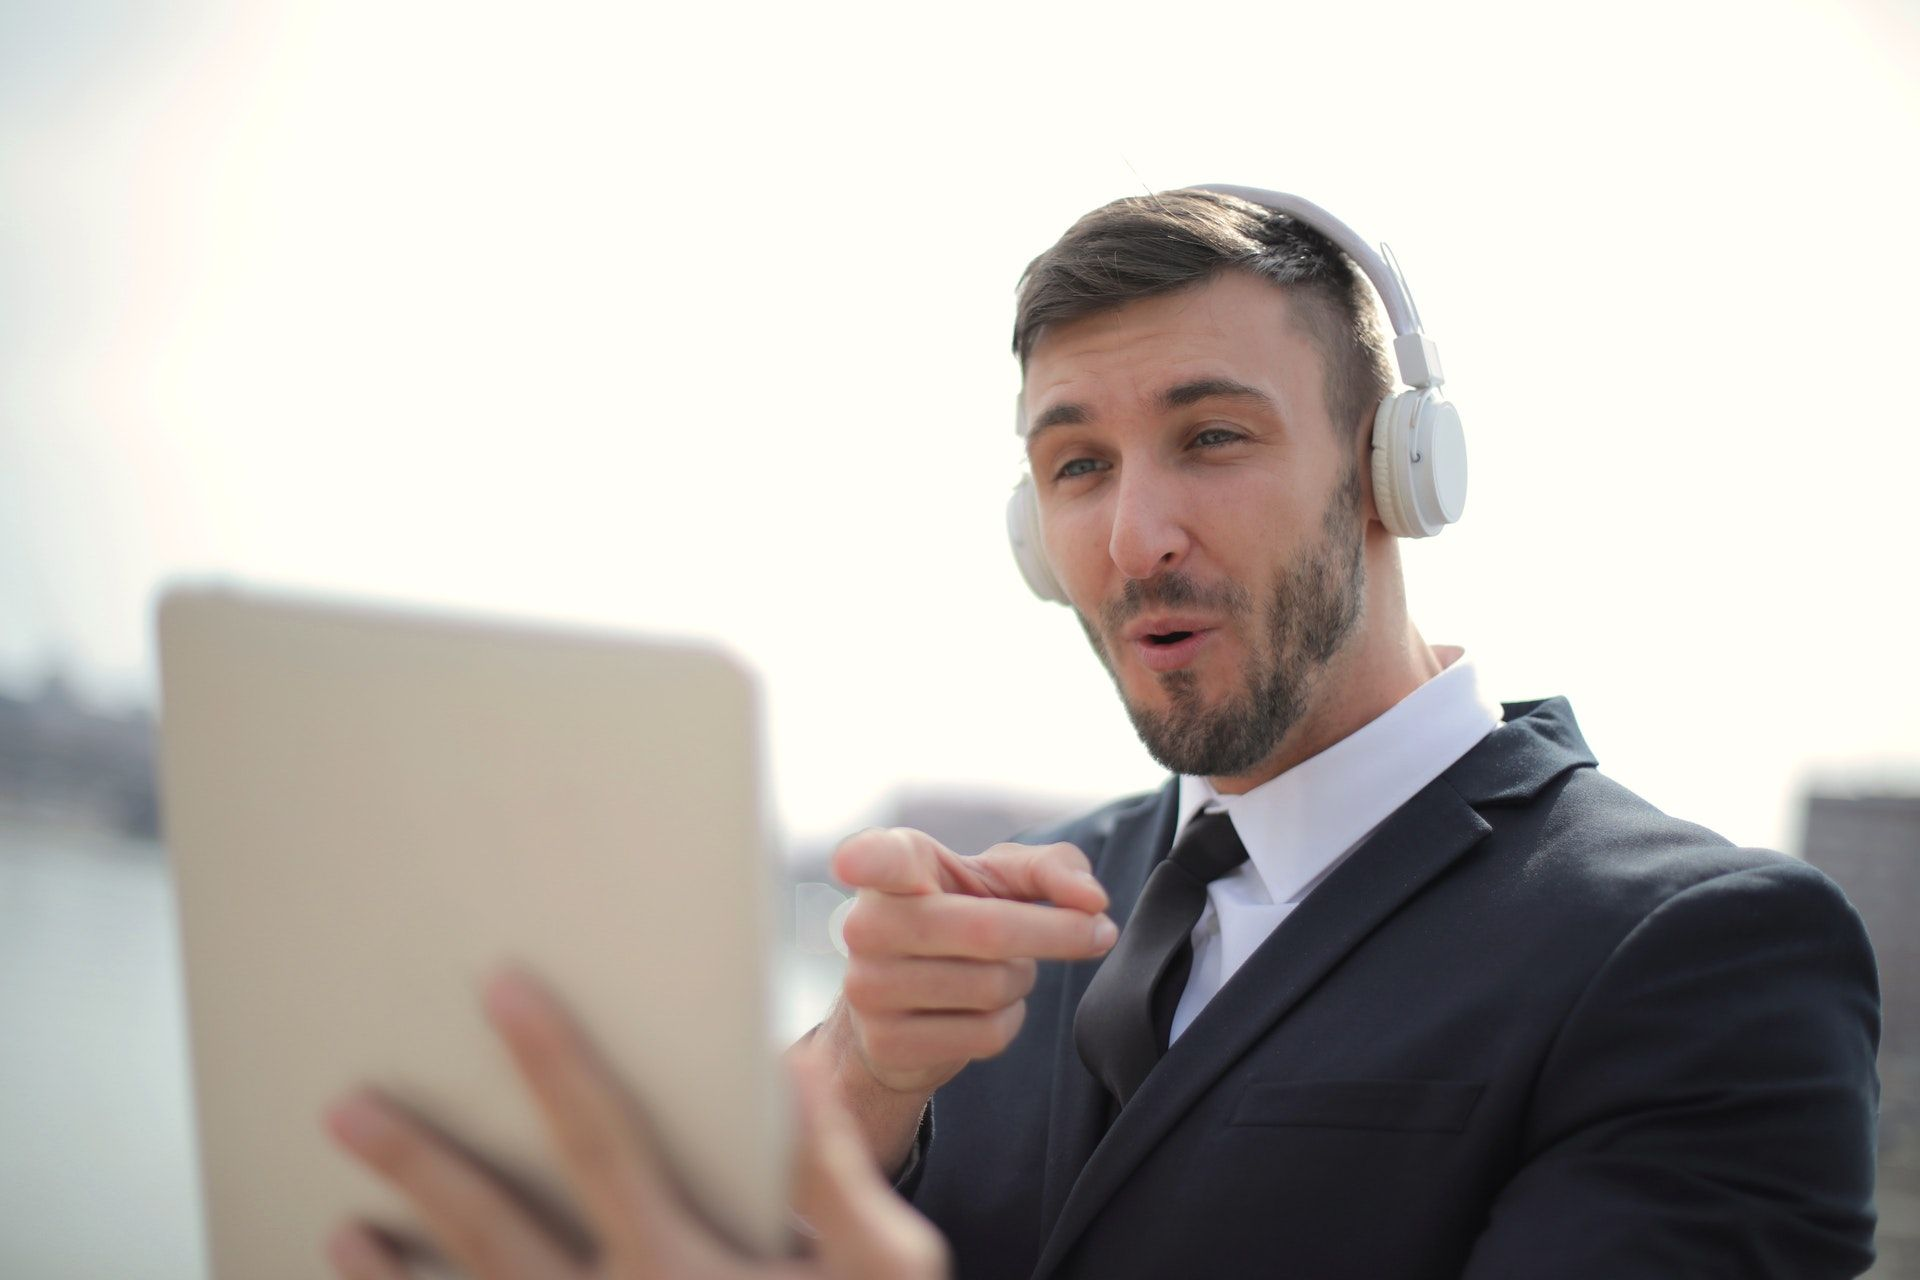 The best video conferencing tools make it possible to collaborate at home or on the go.